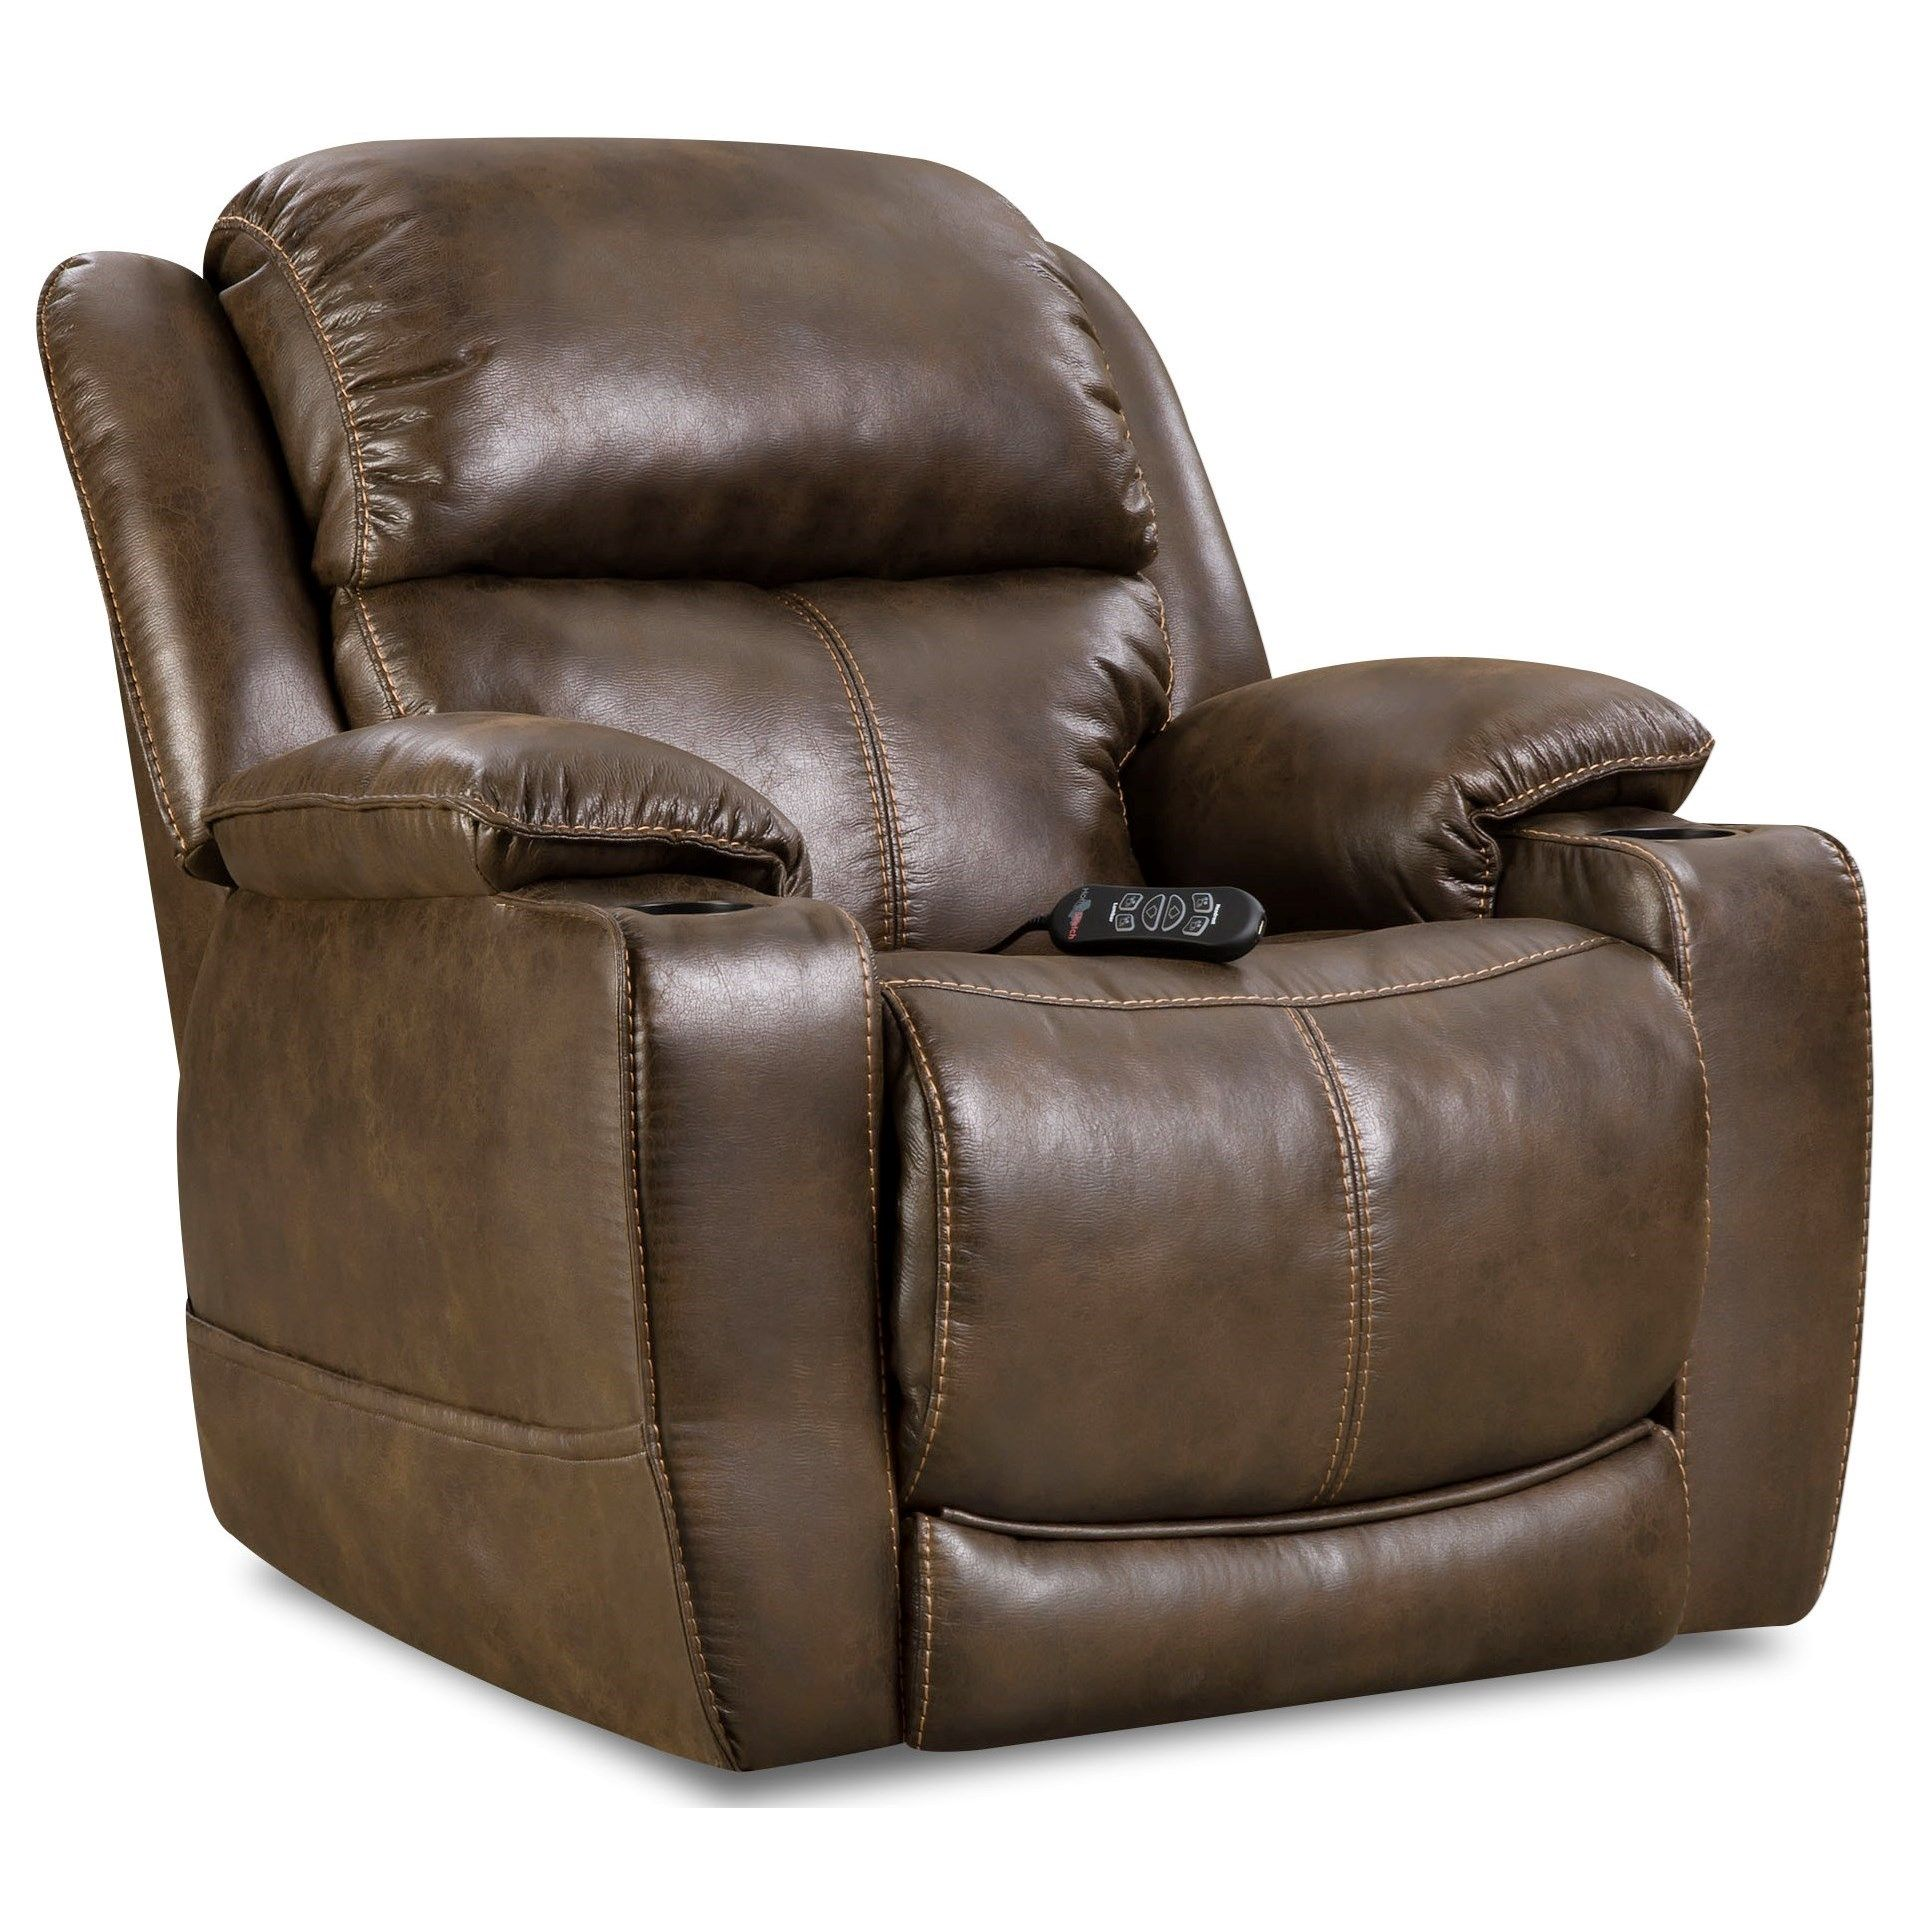 Power Motion Recliner Infinite Position Power Recline Means That You Can Find The Position That Best Suits You Th Recliner Theater Recliners Power Recliners